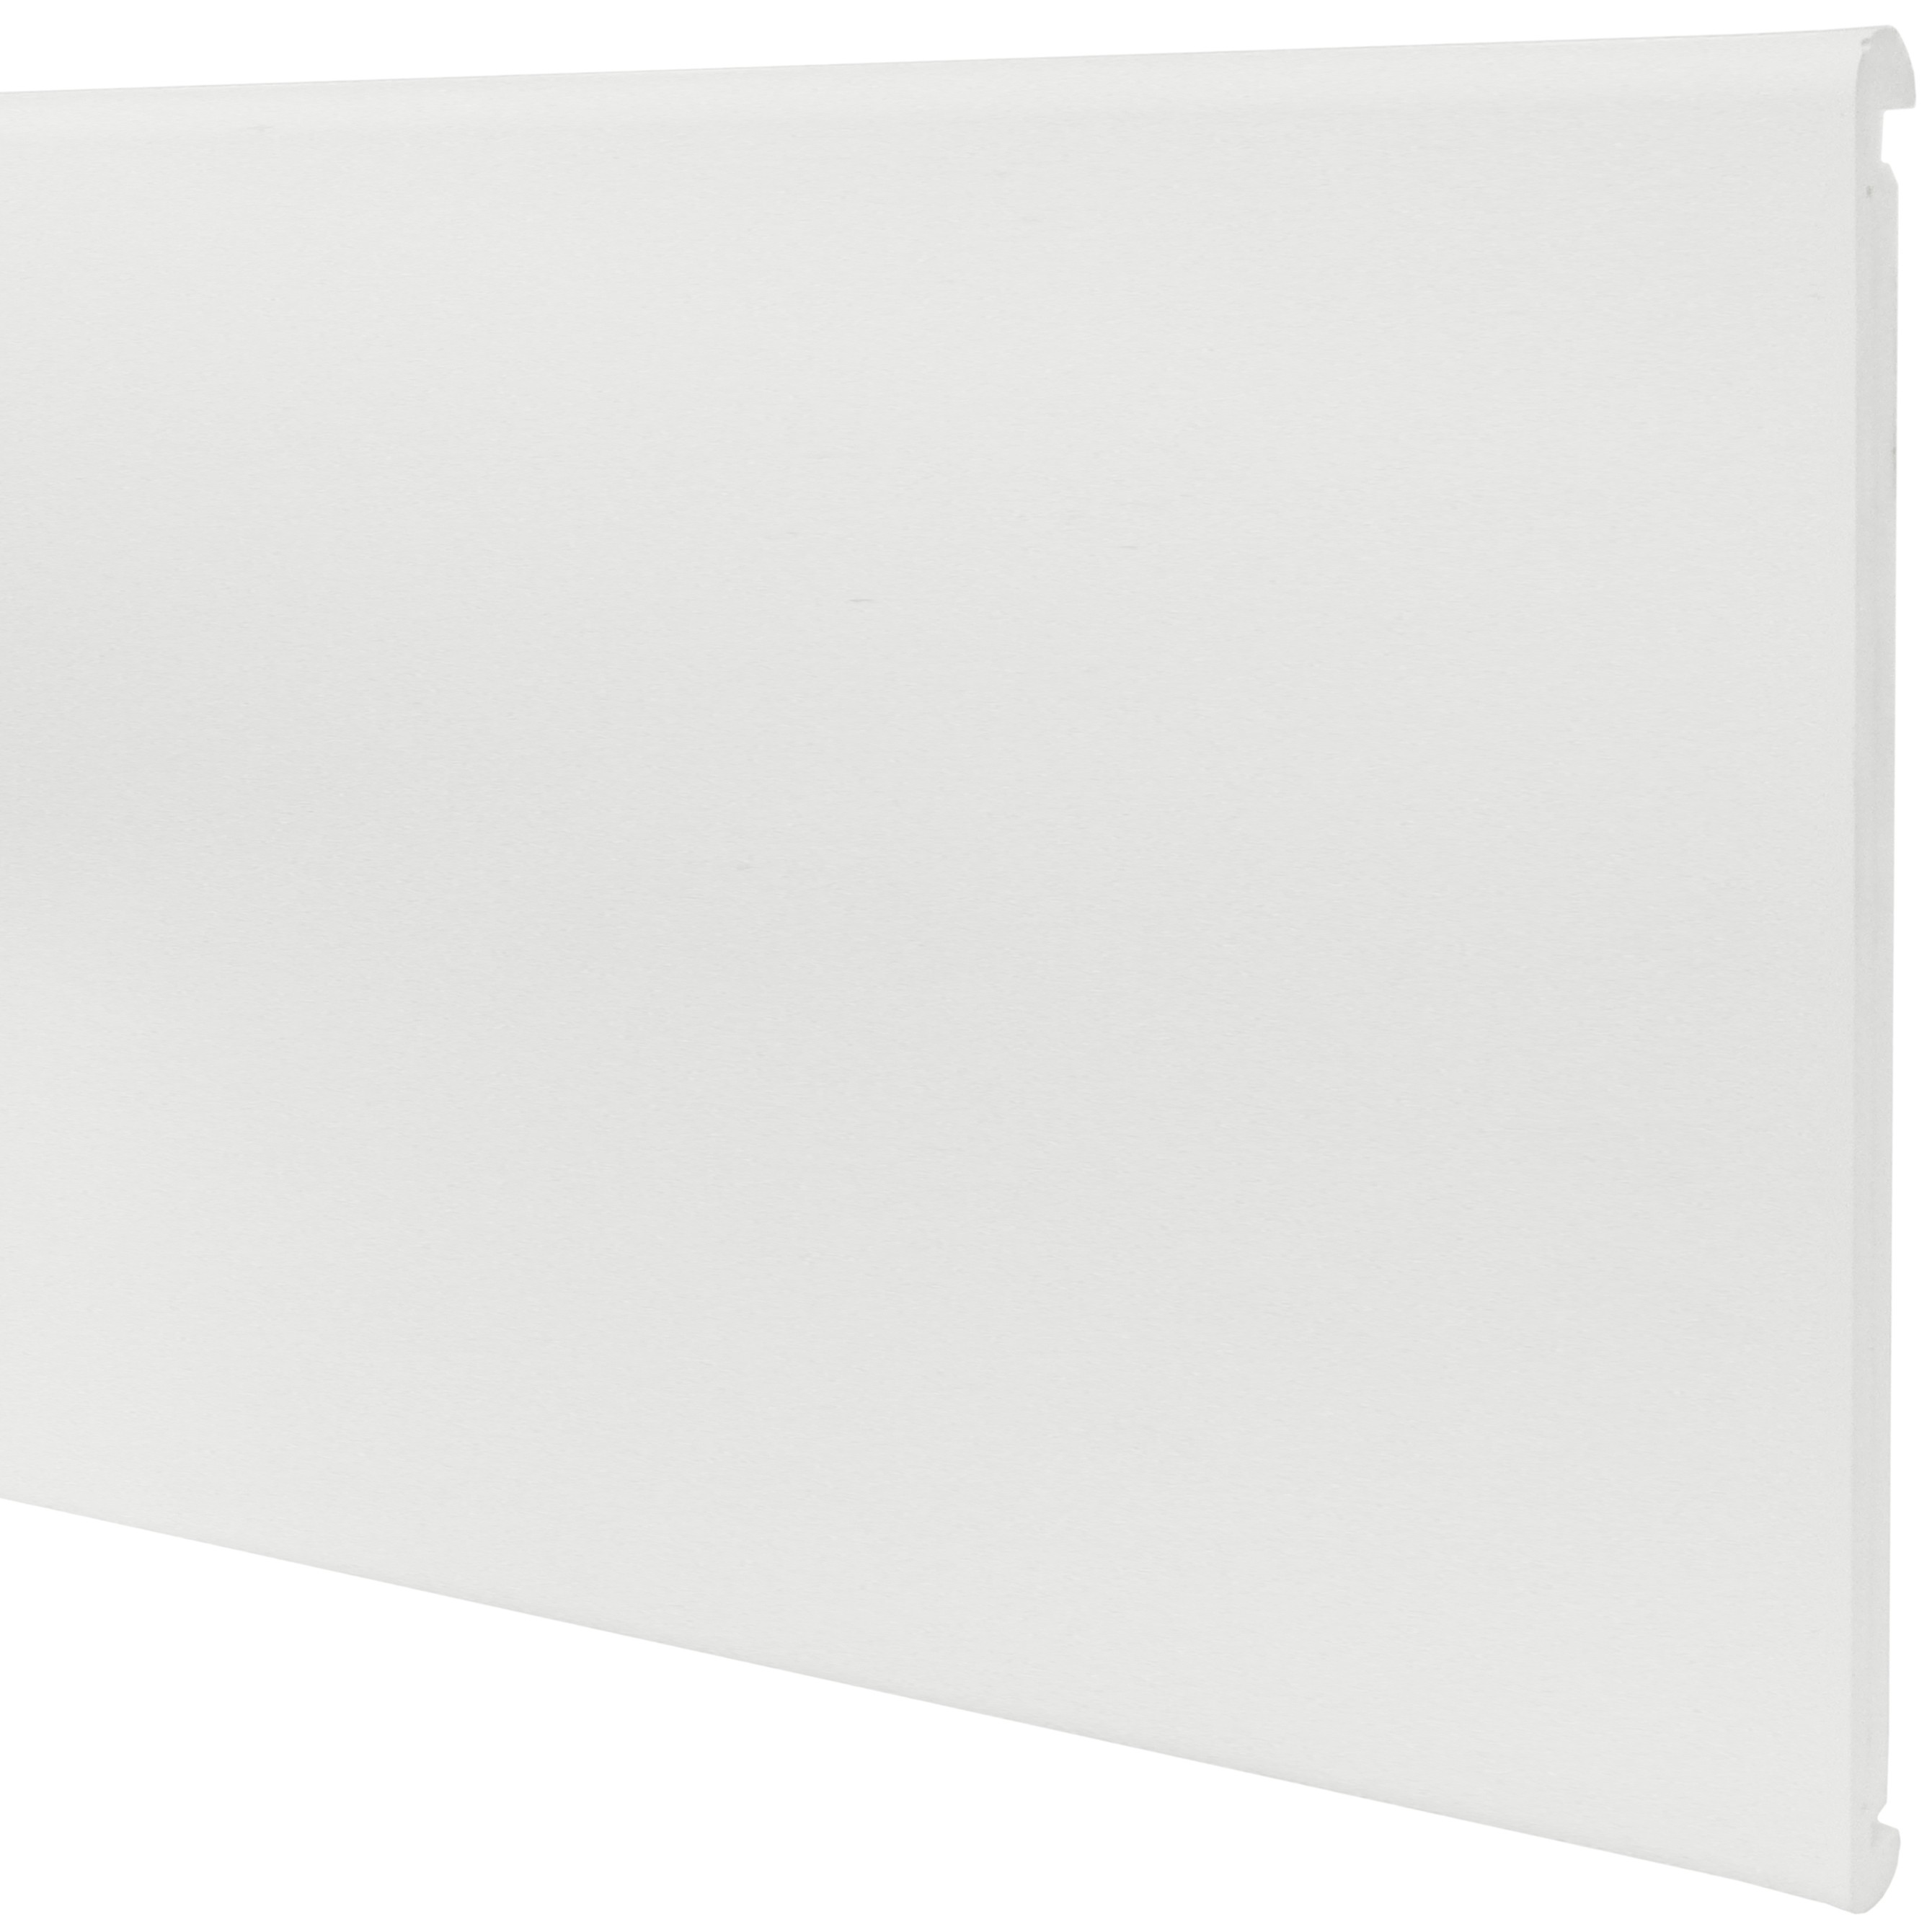 Freefoam Round Nose 18mm Doubled Sided Fascia Board - White, 405mm, 2.5 metre